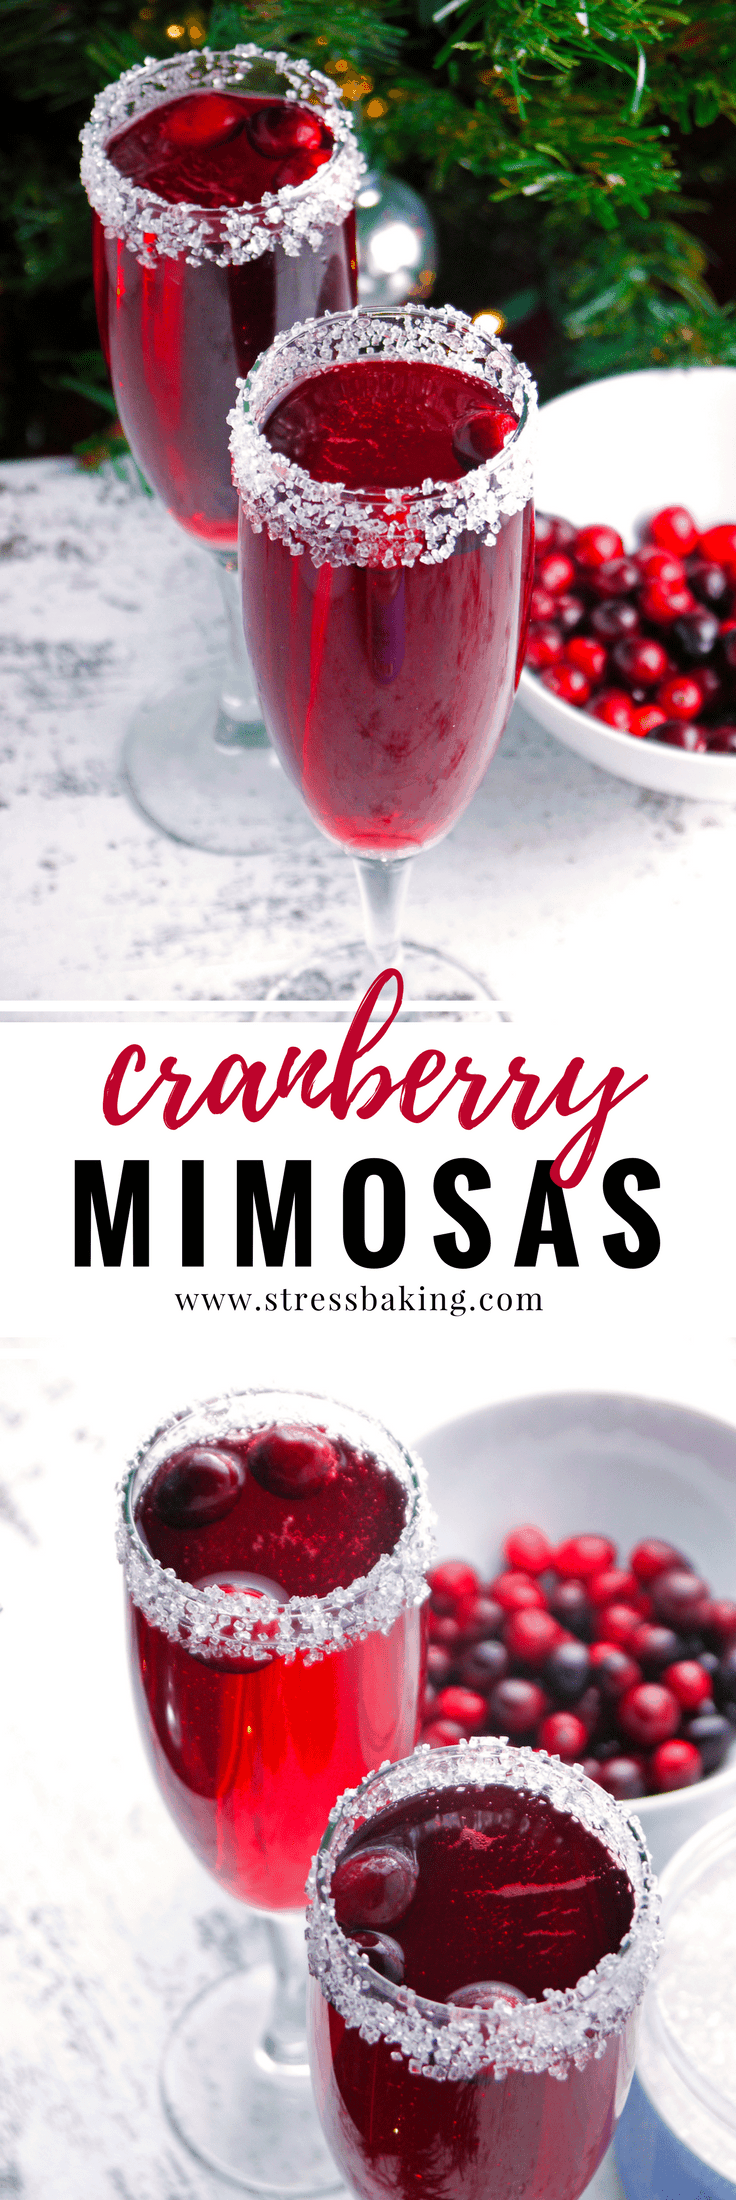 Cranberry Mimosas: A cranberry lover's version of the standard mimosa. Tart cranberries pair perfectly with a sugar-rimmed glass and sparkling champagne bubbles! The perfect holiday cocktail or Christmas cocktail. | cranberry cocktail | easy cocktail | holiday drink | stressbaking.com #stressbaking #holidays #christmas #thanksgiving #newyears #cranberries #drinks #cocktail